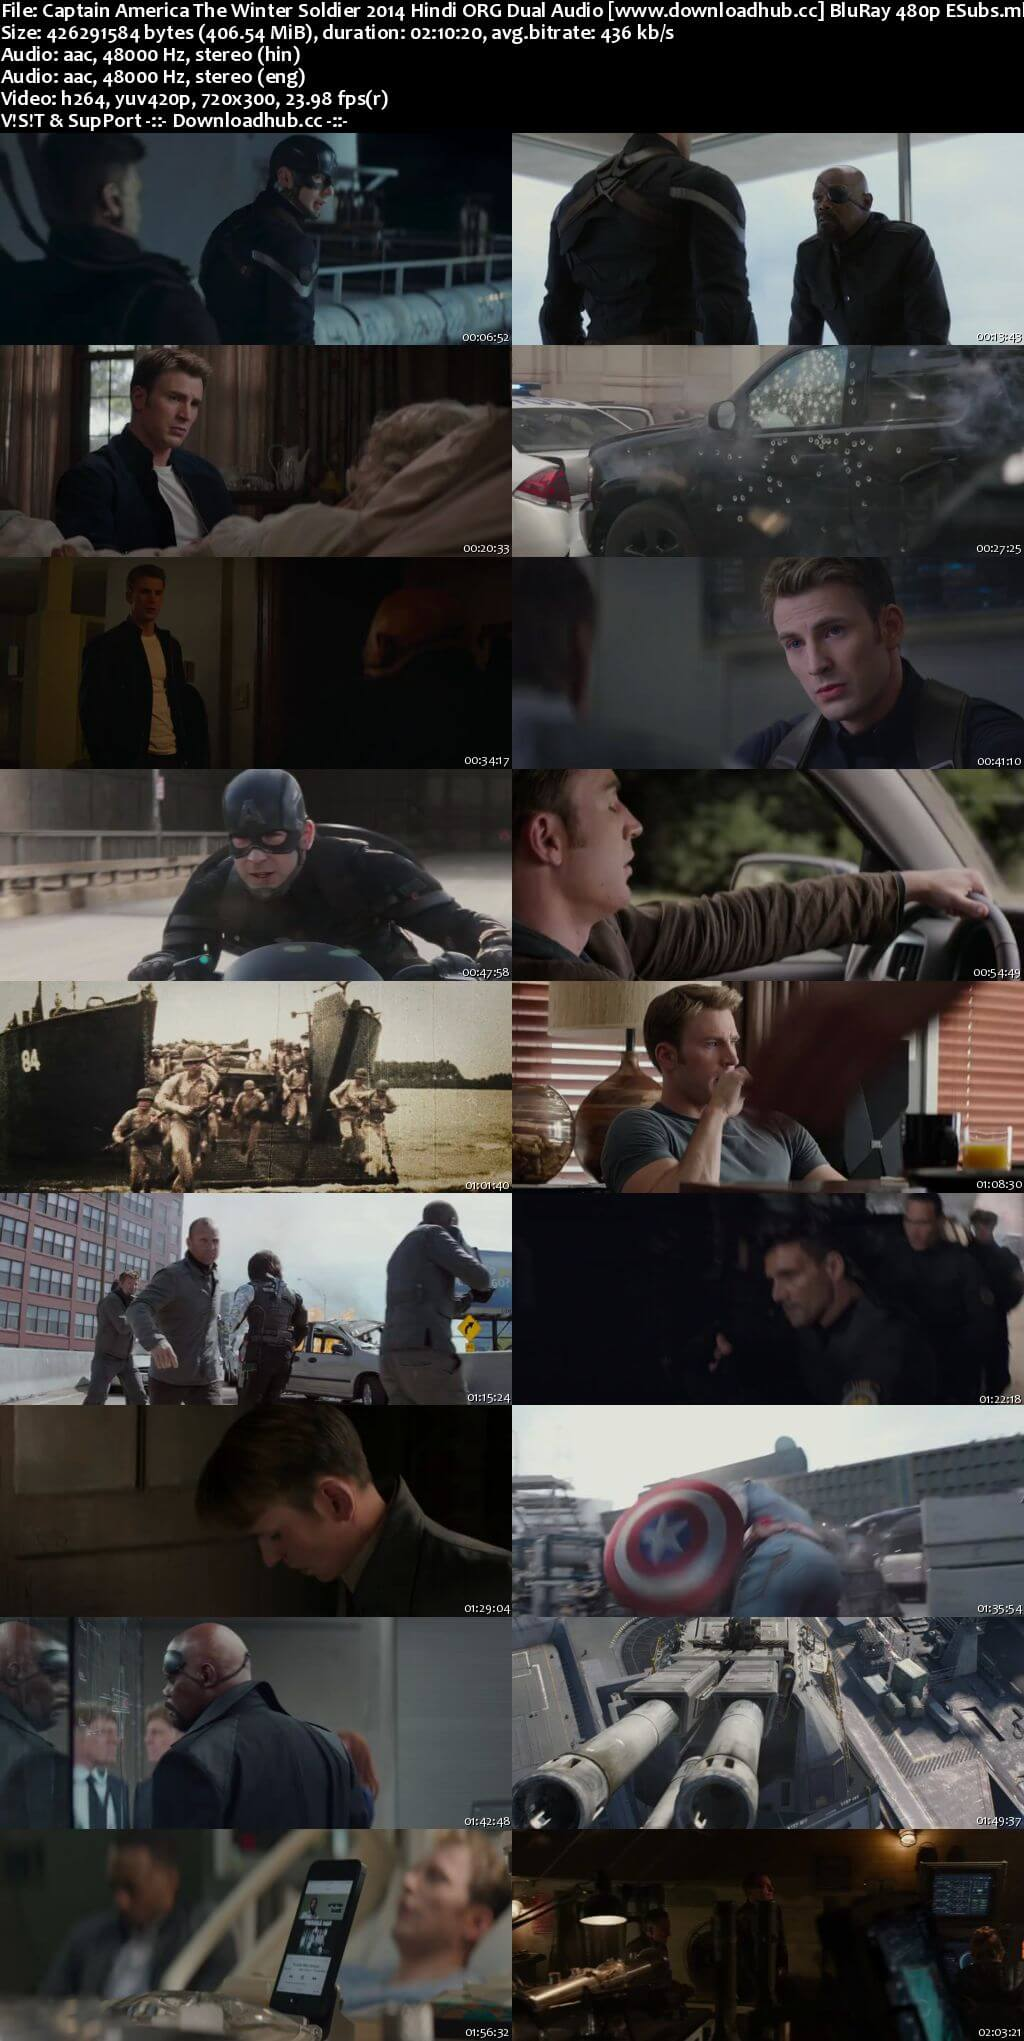 Captain America The Winter Soldier 2014 Hindi ORG Dual Audio 400MB BluRay 480p ESubs